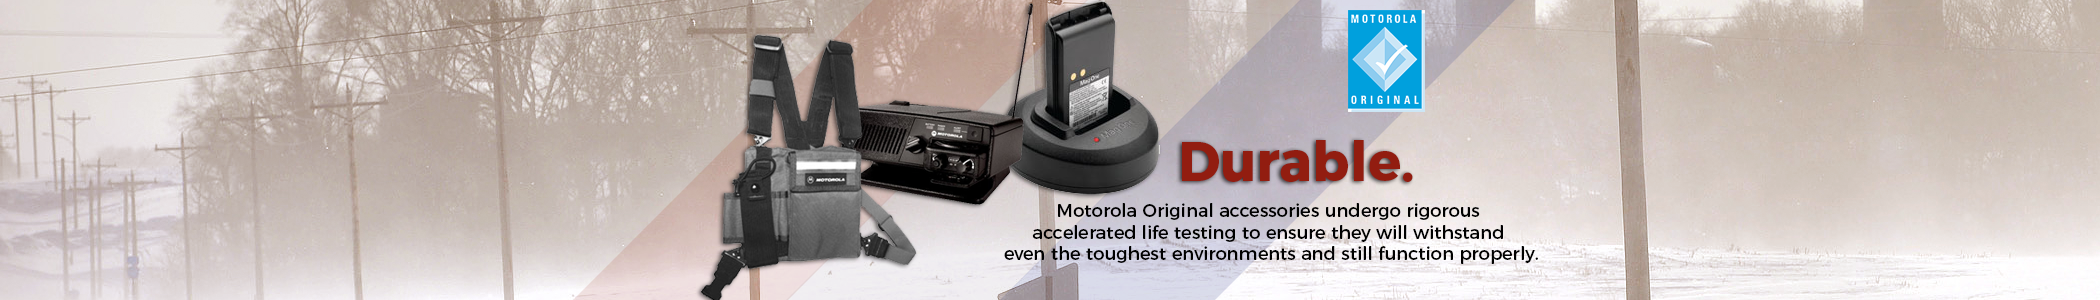 Motorola Durable Slide